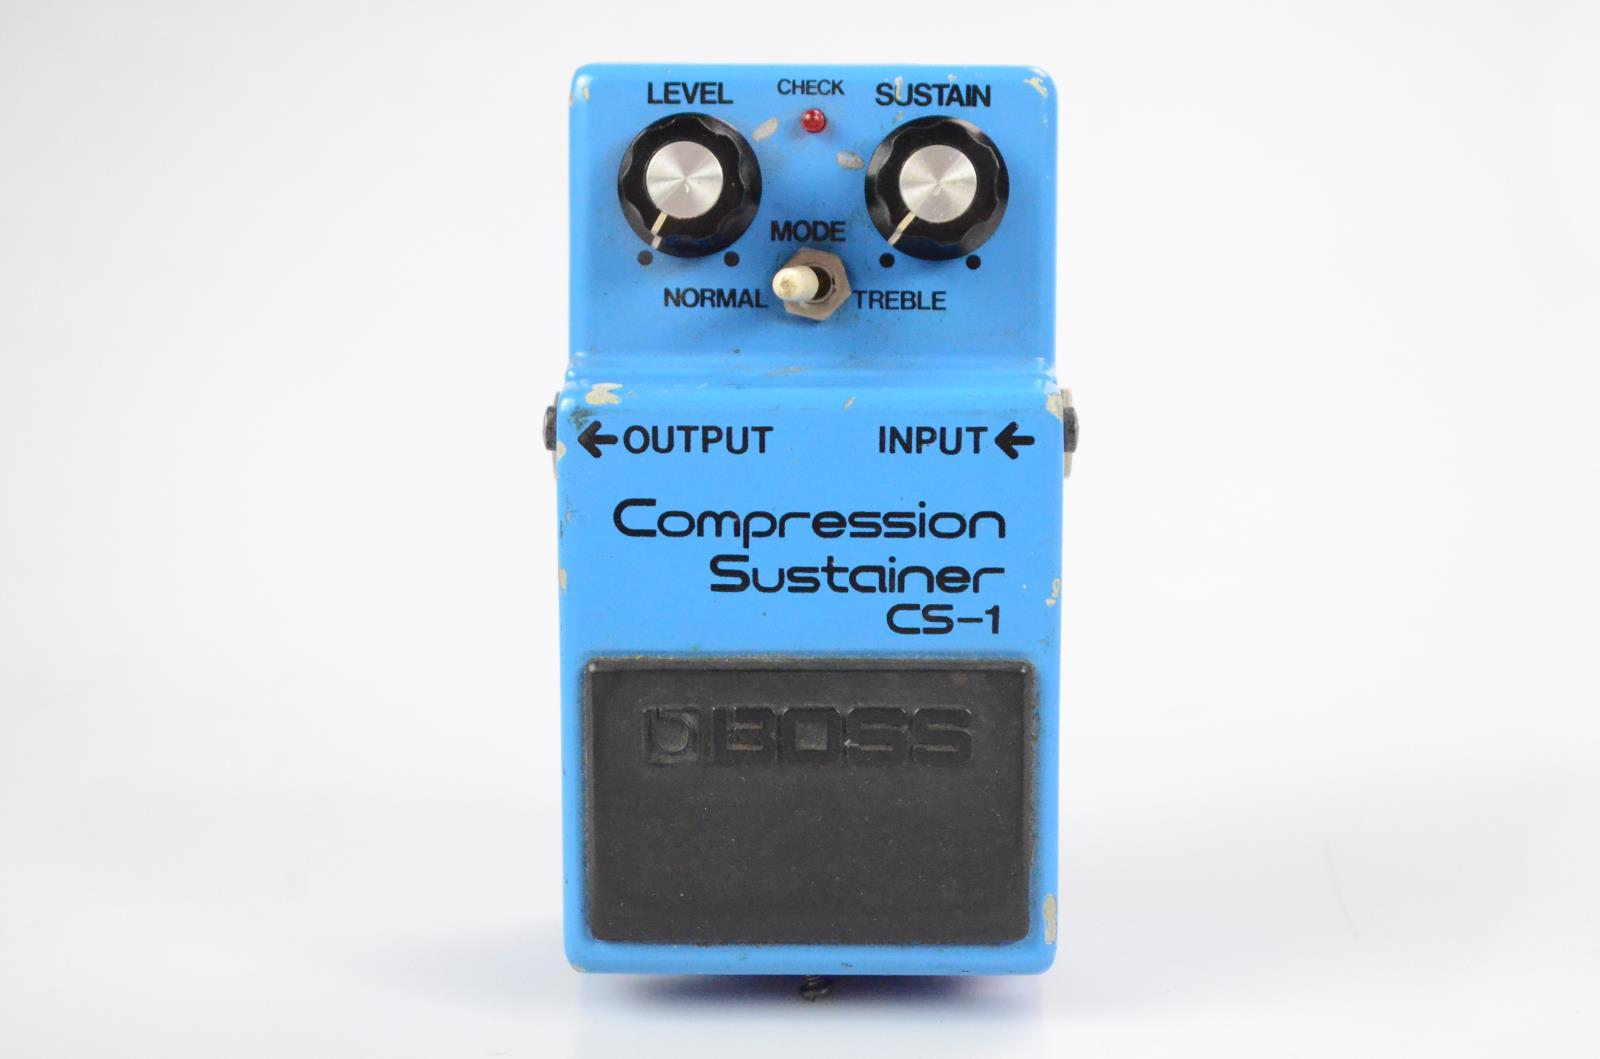 Boss CS-1 CS1 Compression Sustainer Guitar Pedal Owned by Carlos Rios #33956